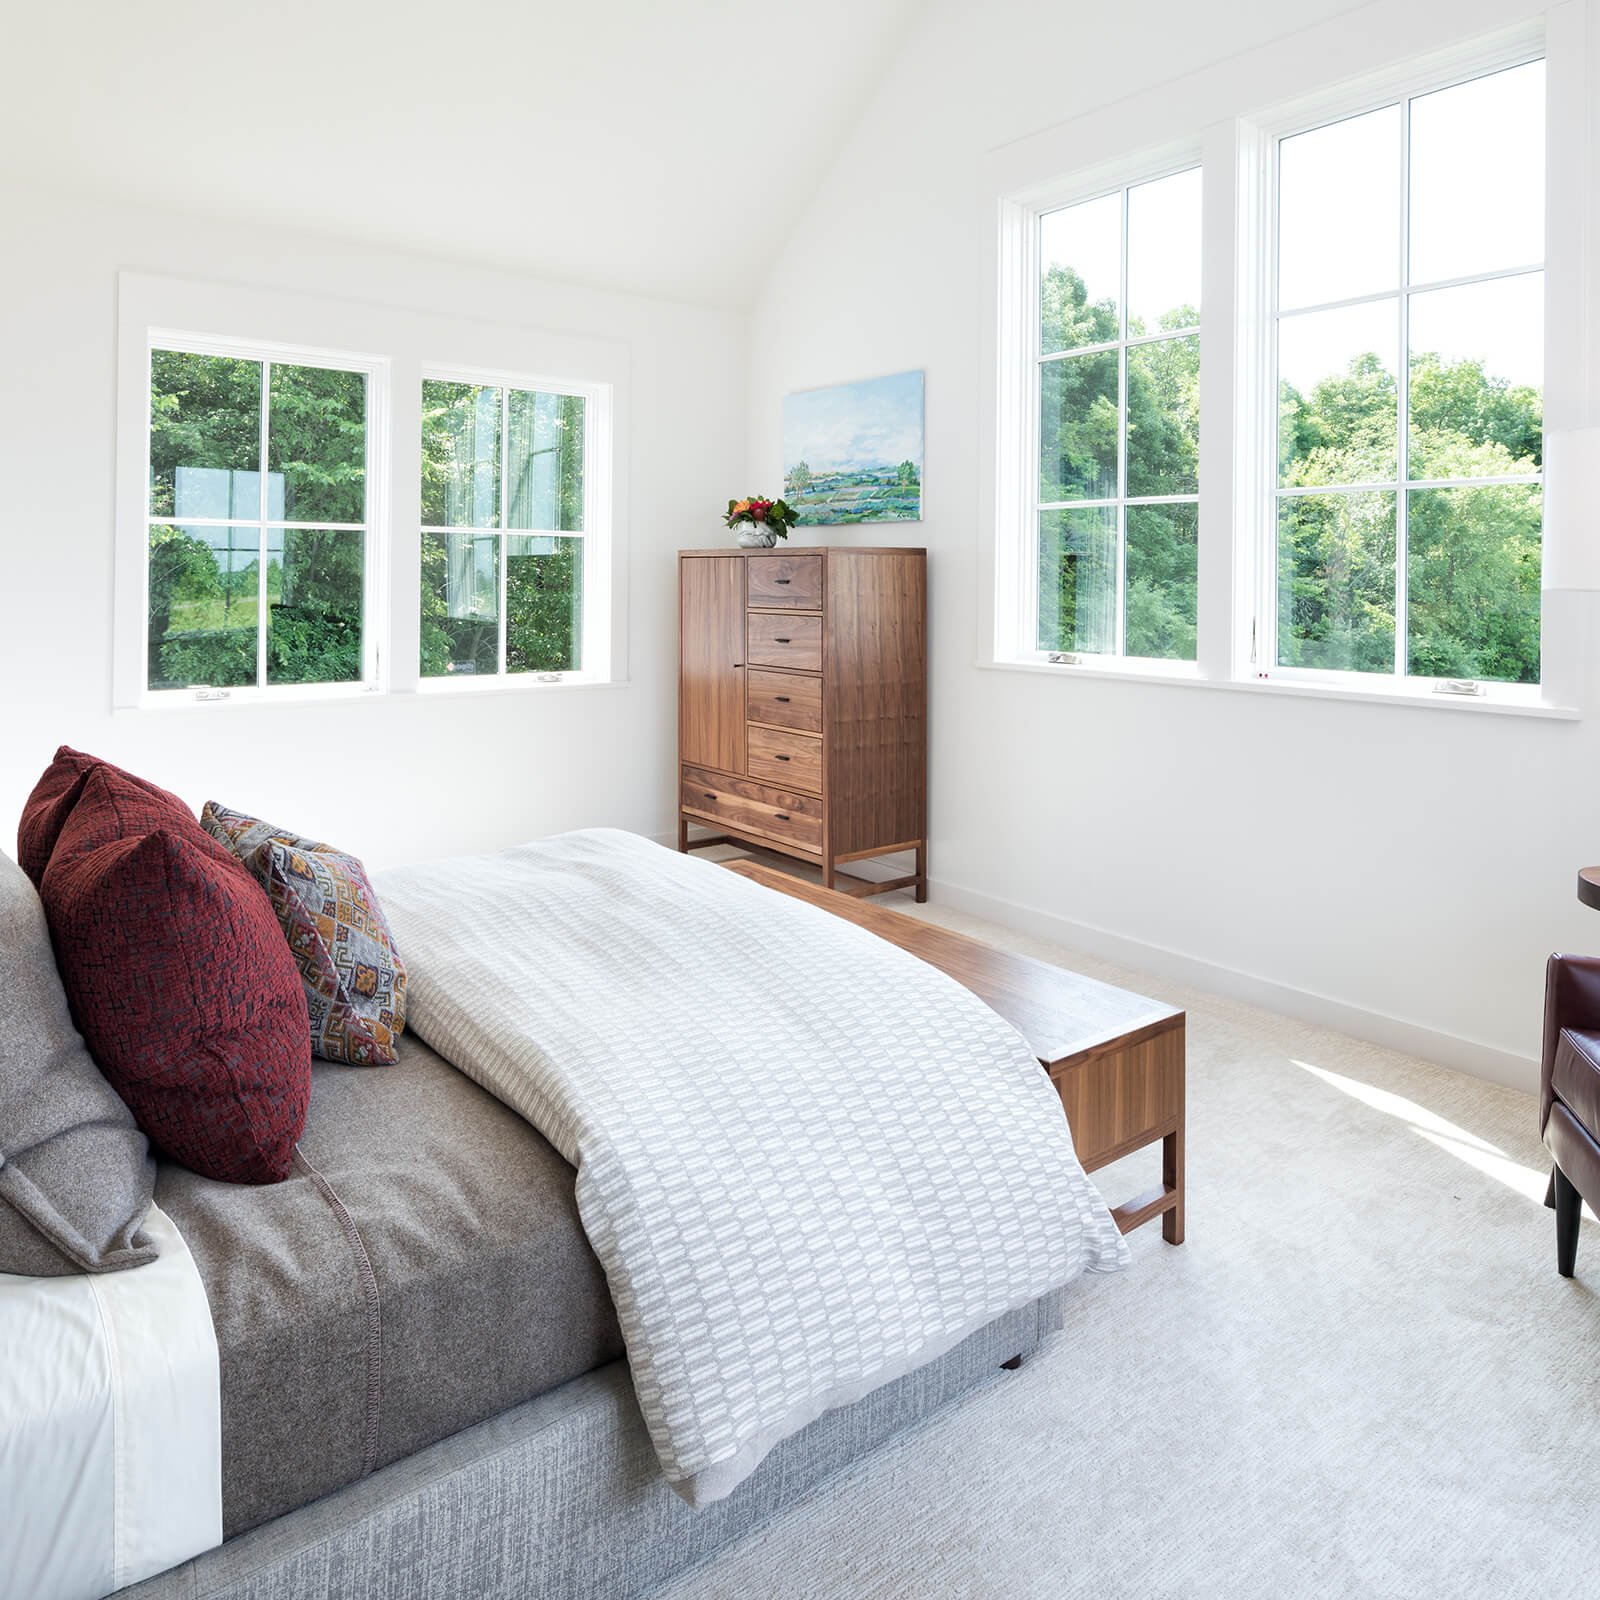 Bedroom with Marvin Elevate Casement Windows and Elevate Awning Windows